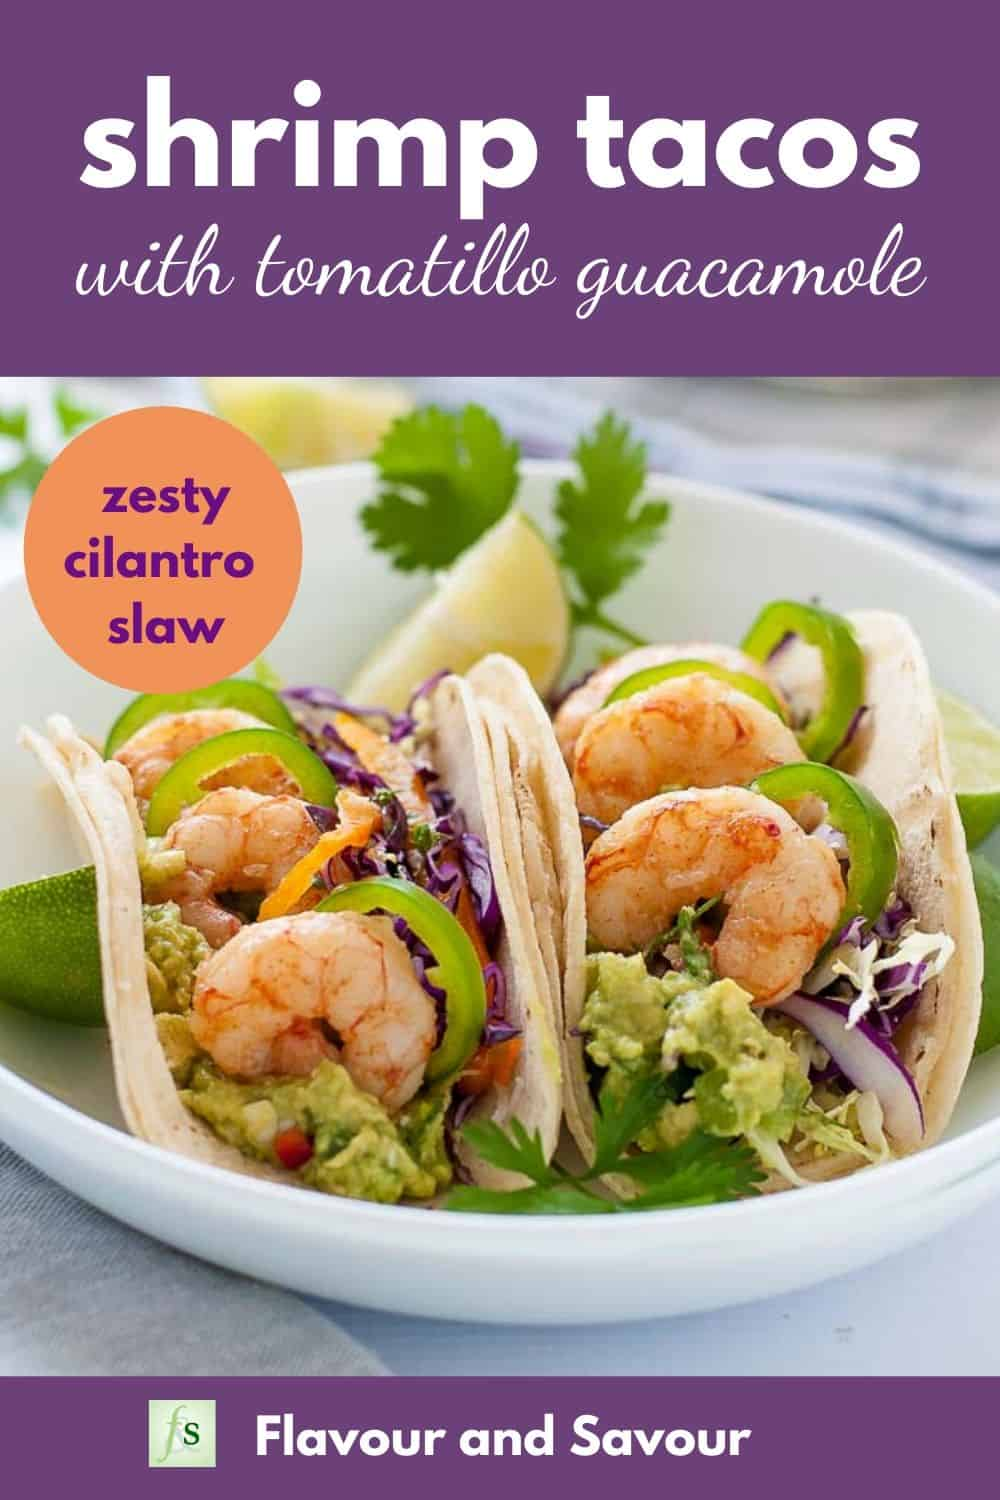 Shrimp Tacos with Tomatillo Guacamole with text overlay